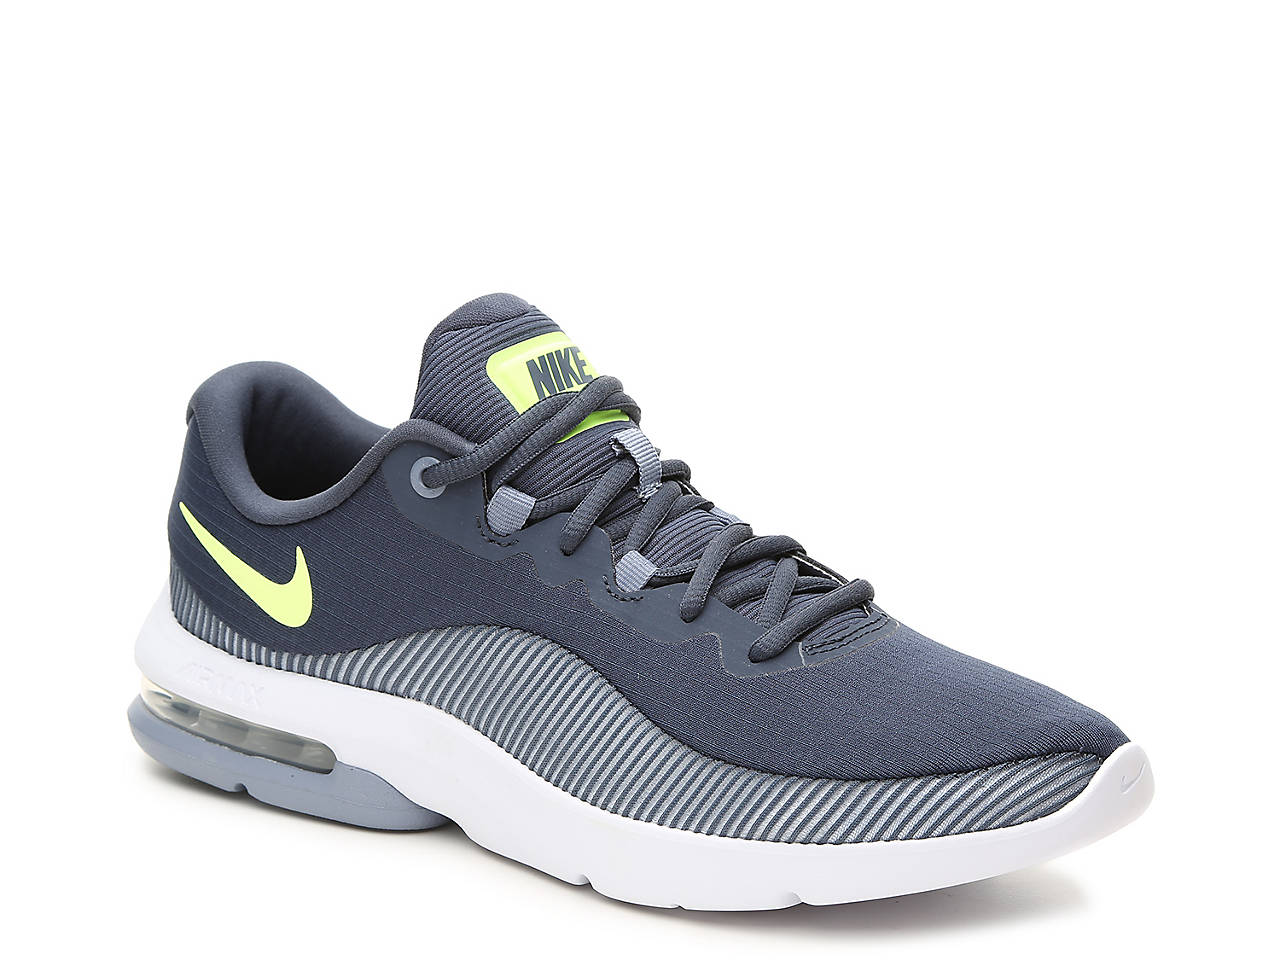 save off 58f2d 7aa91 Nike. Air Max Advantage 2 Lightweight Running Shoe ...